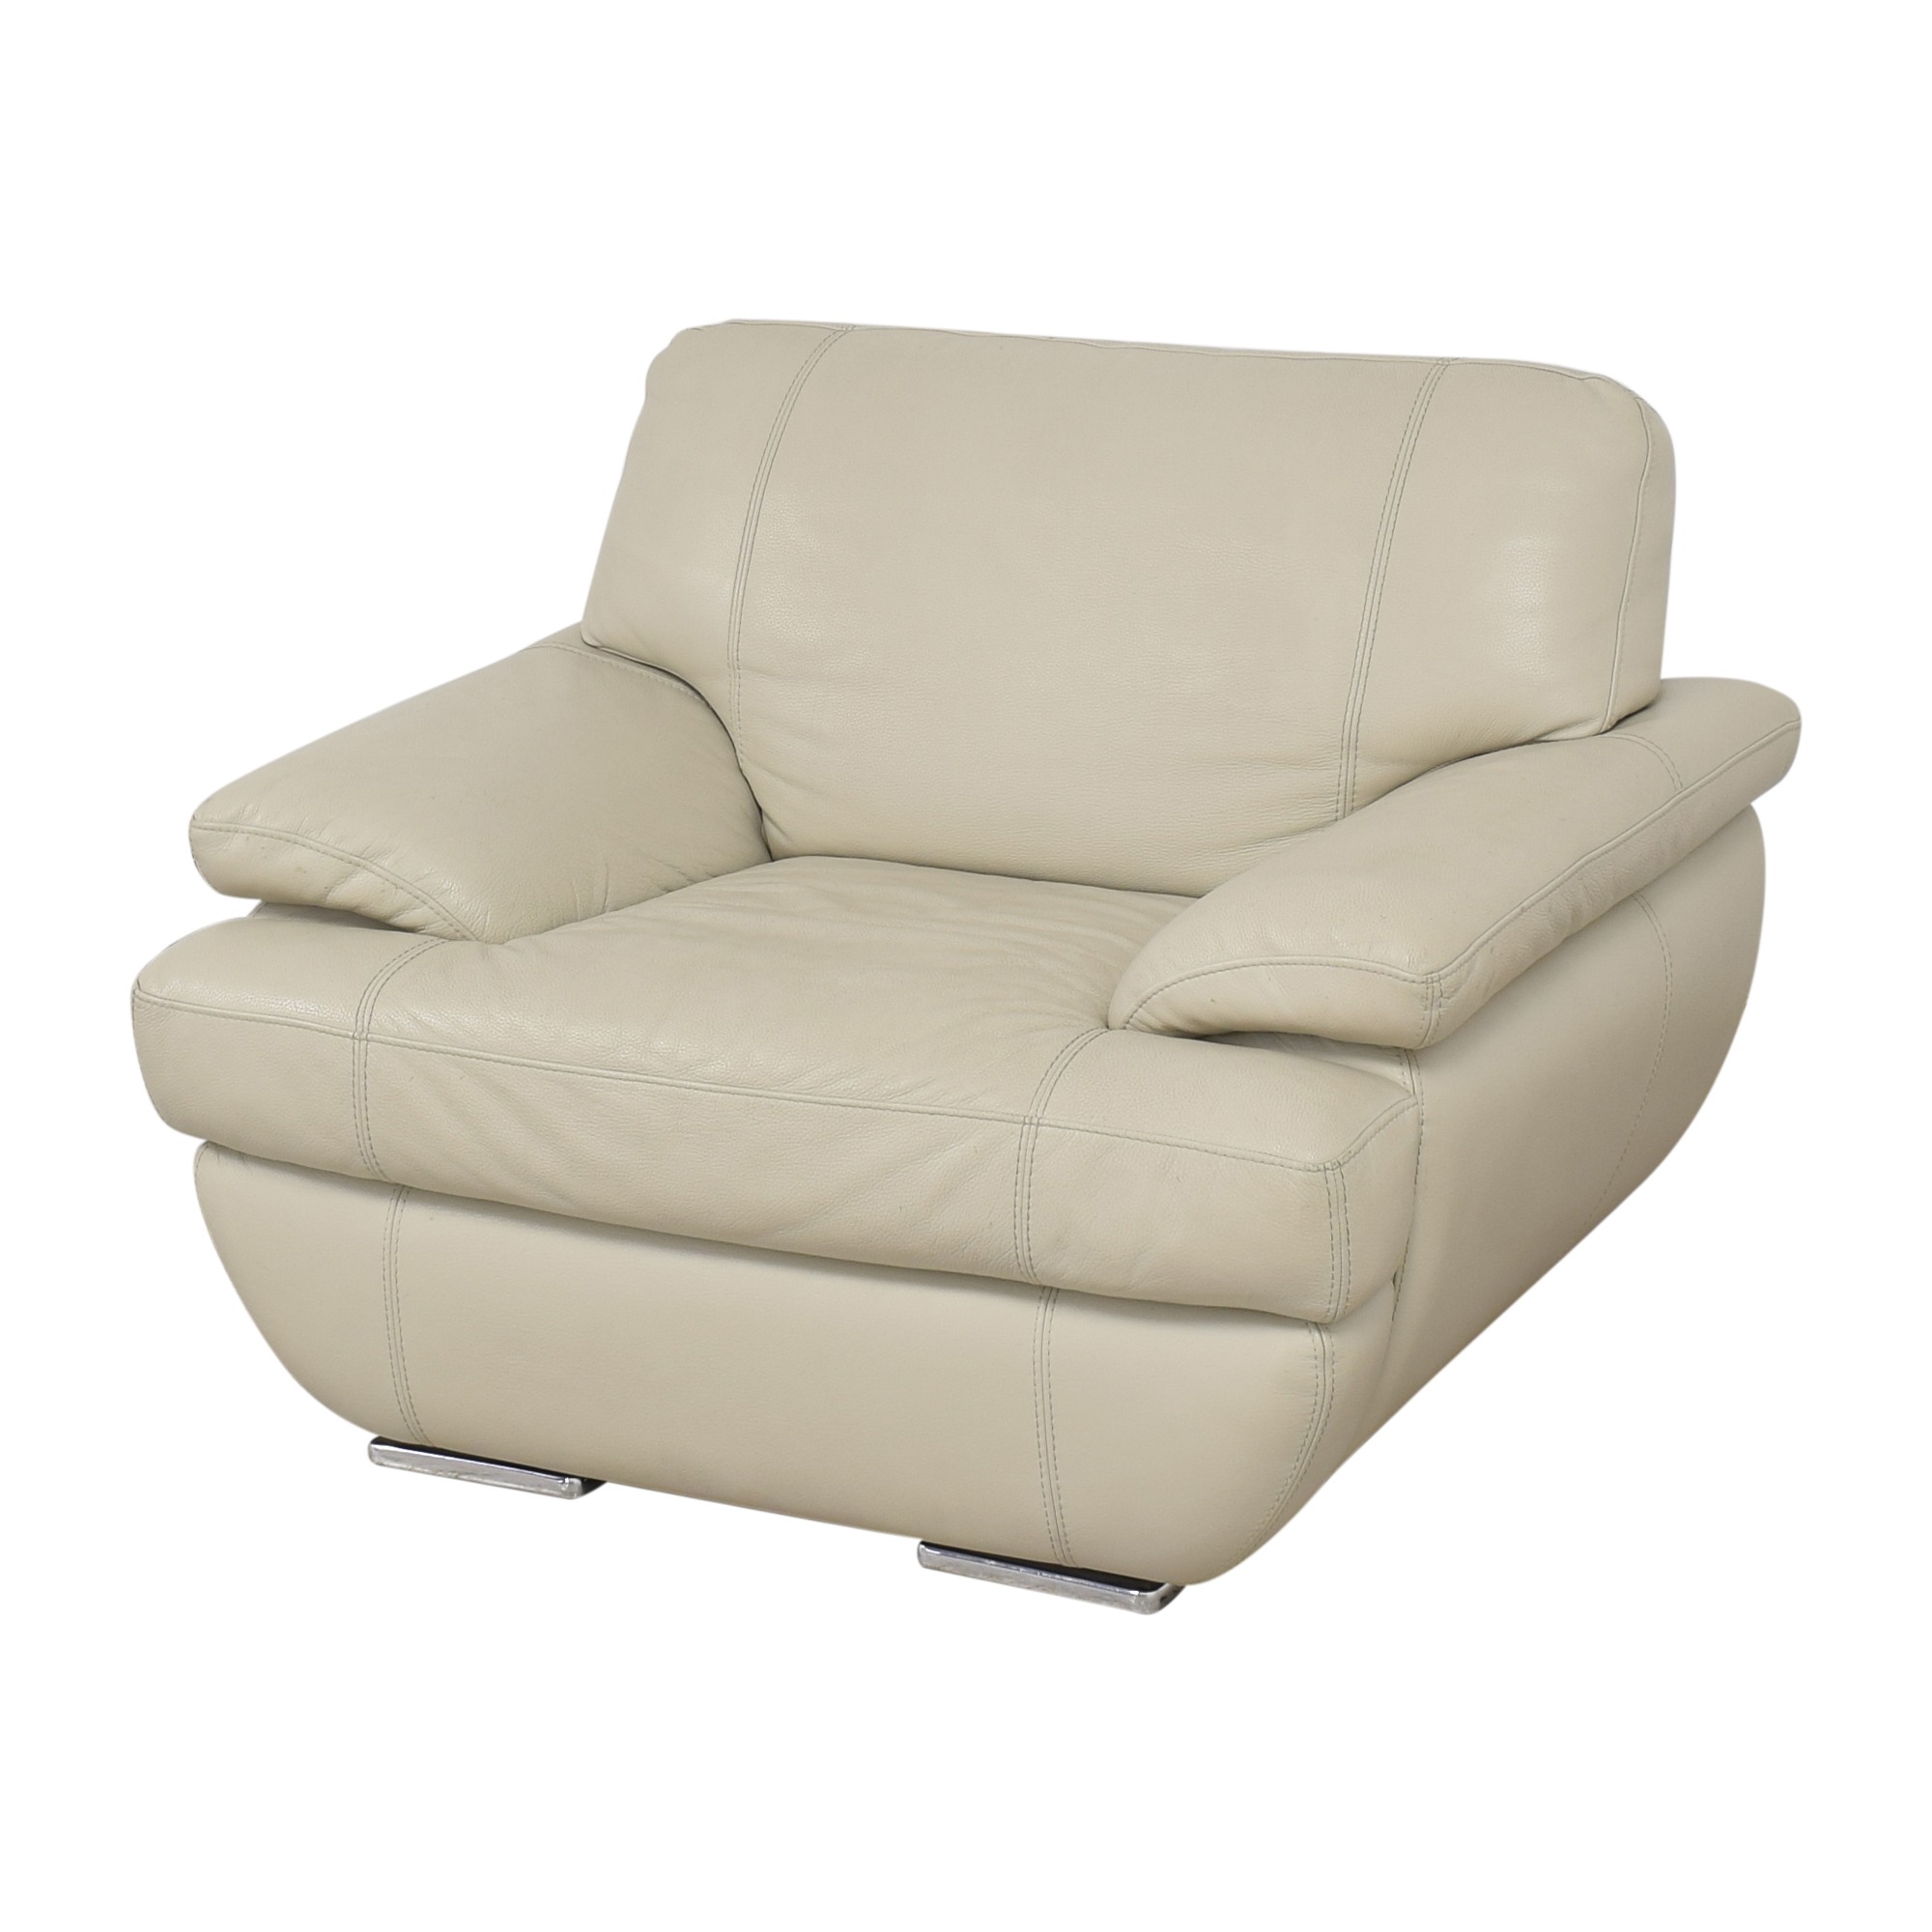 buy Chateau d'Ax Lounge Chair Chateau d'Ax Accent Chairs